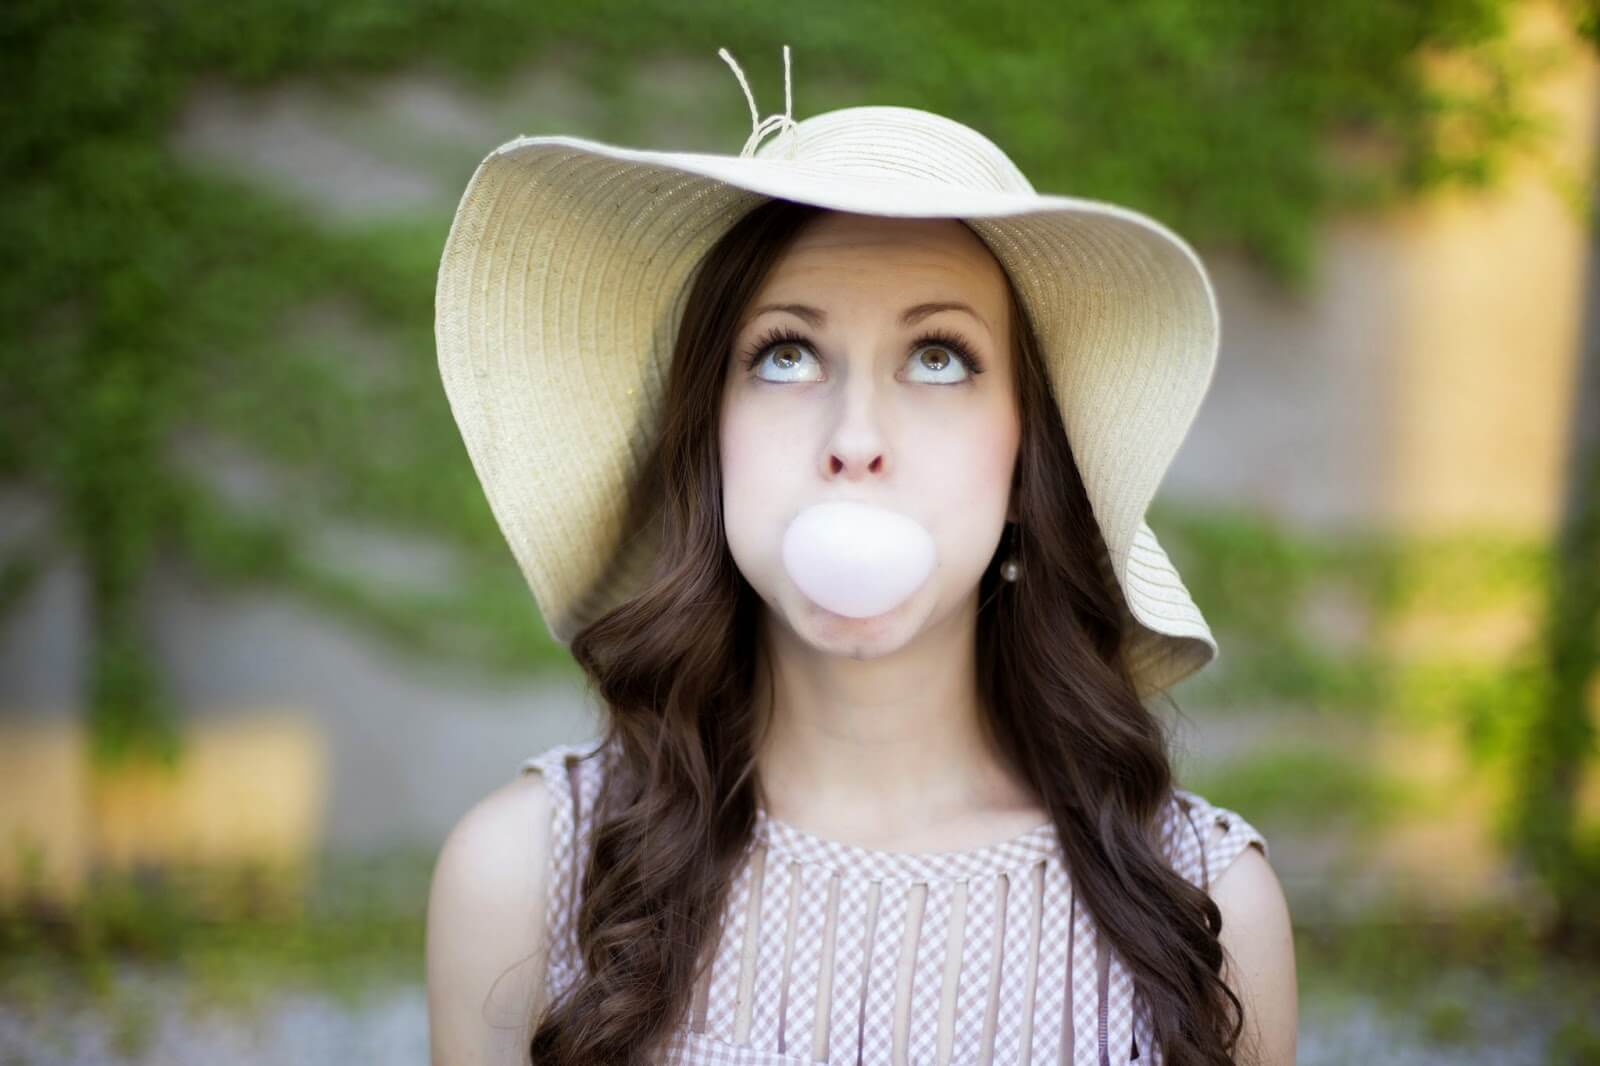 chewing gum and blowing bubbles